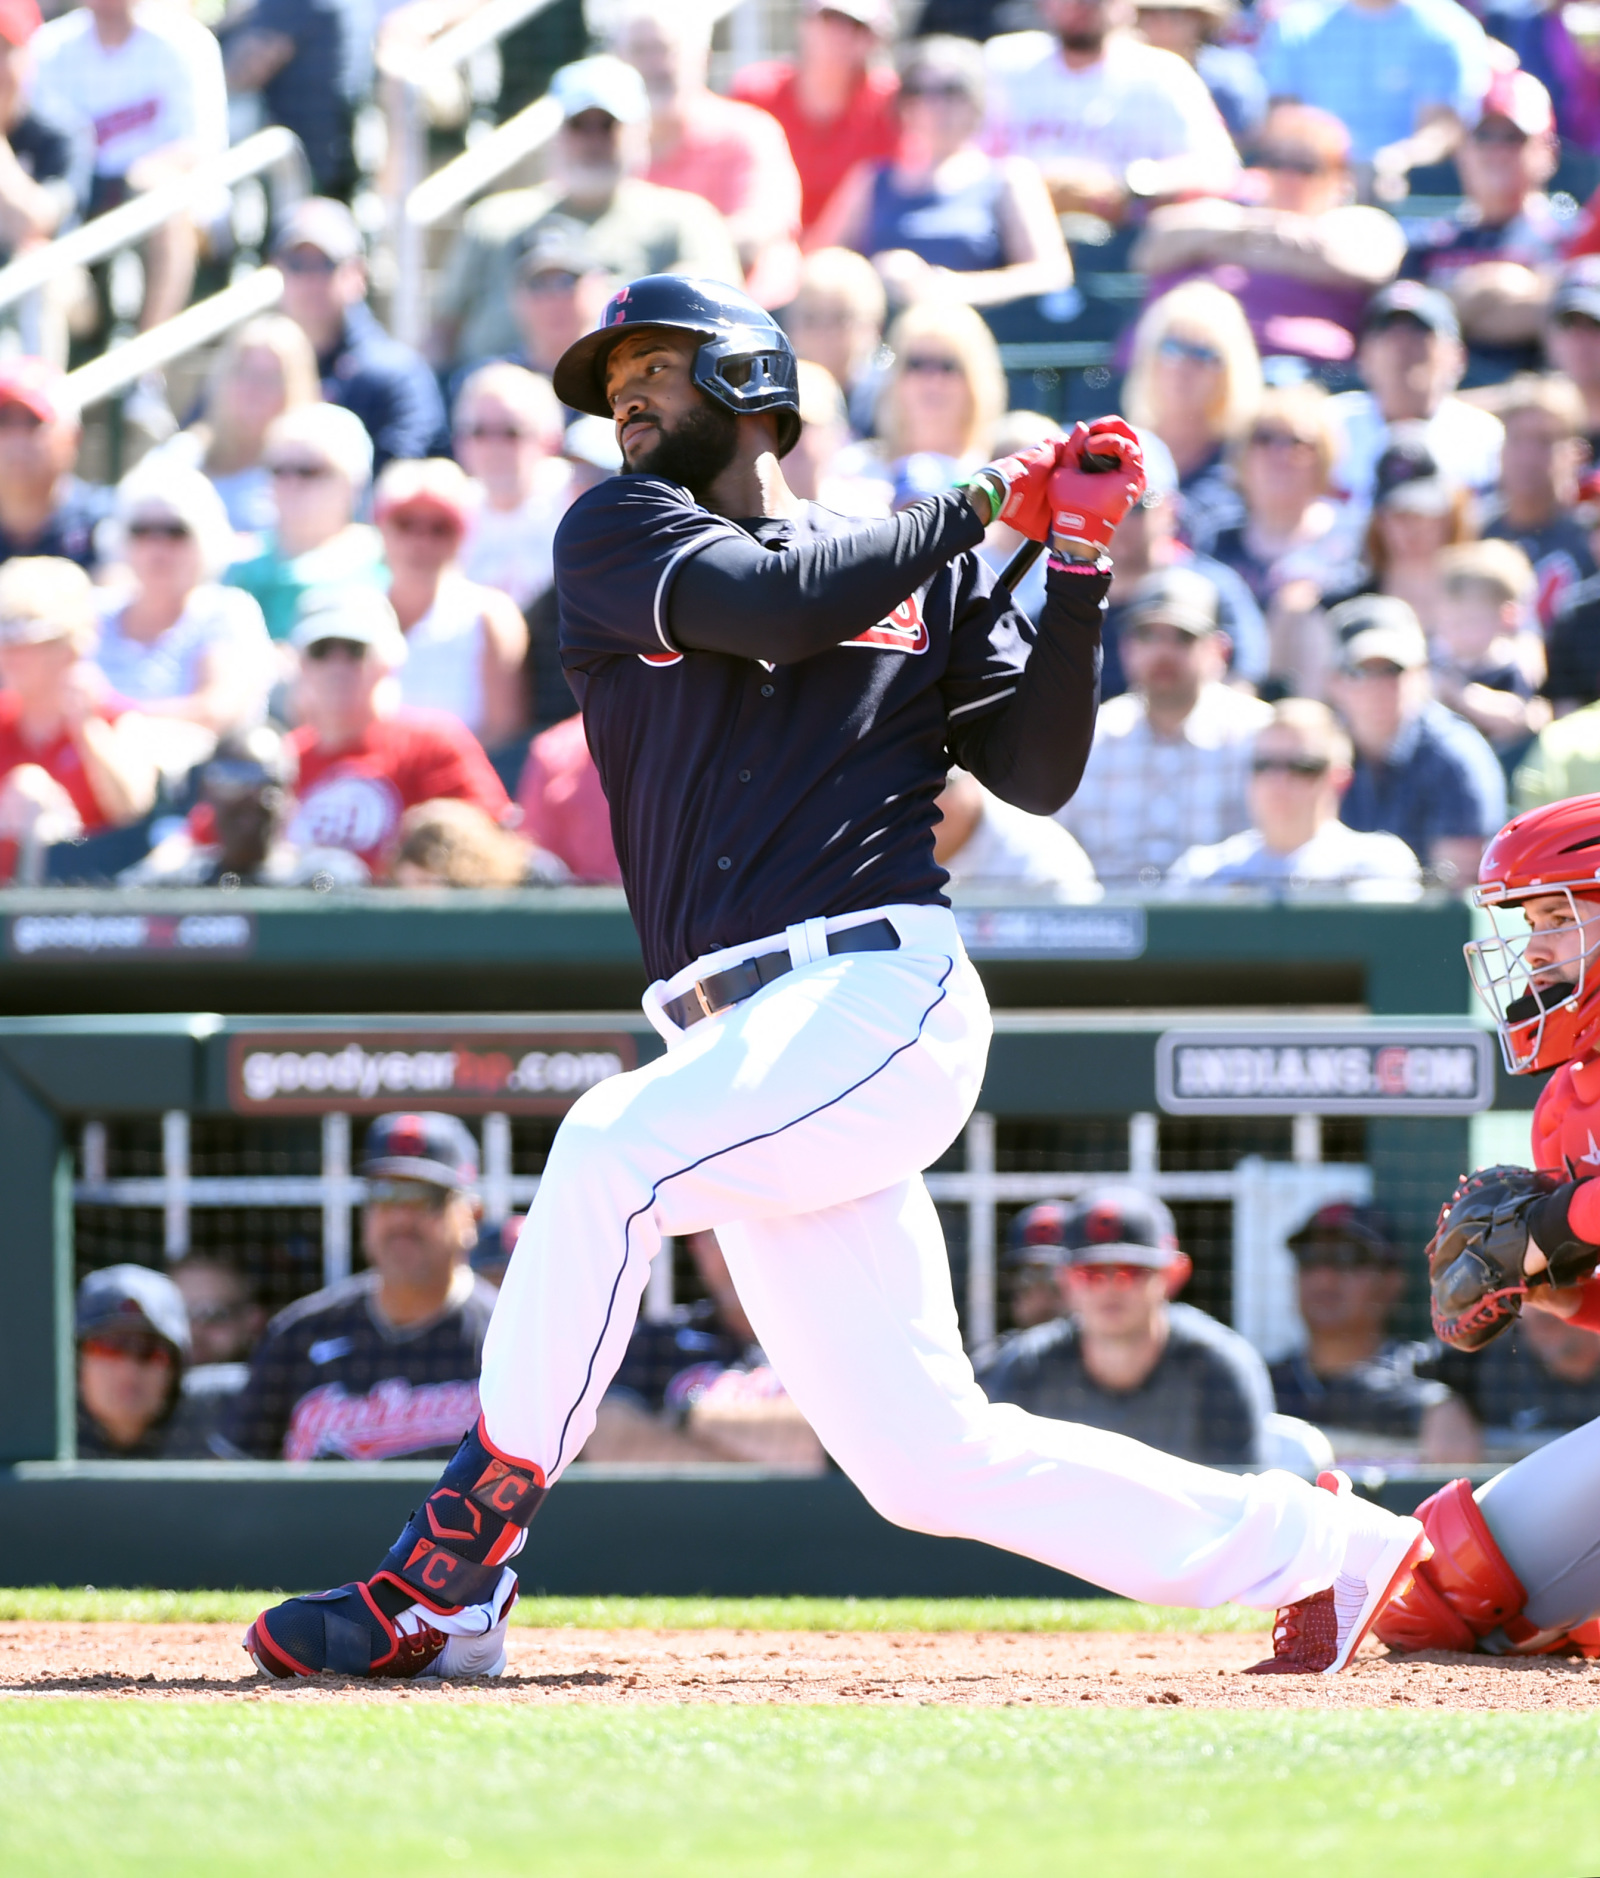 Cleveland Indians: 3 players who had a bad spring